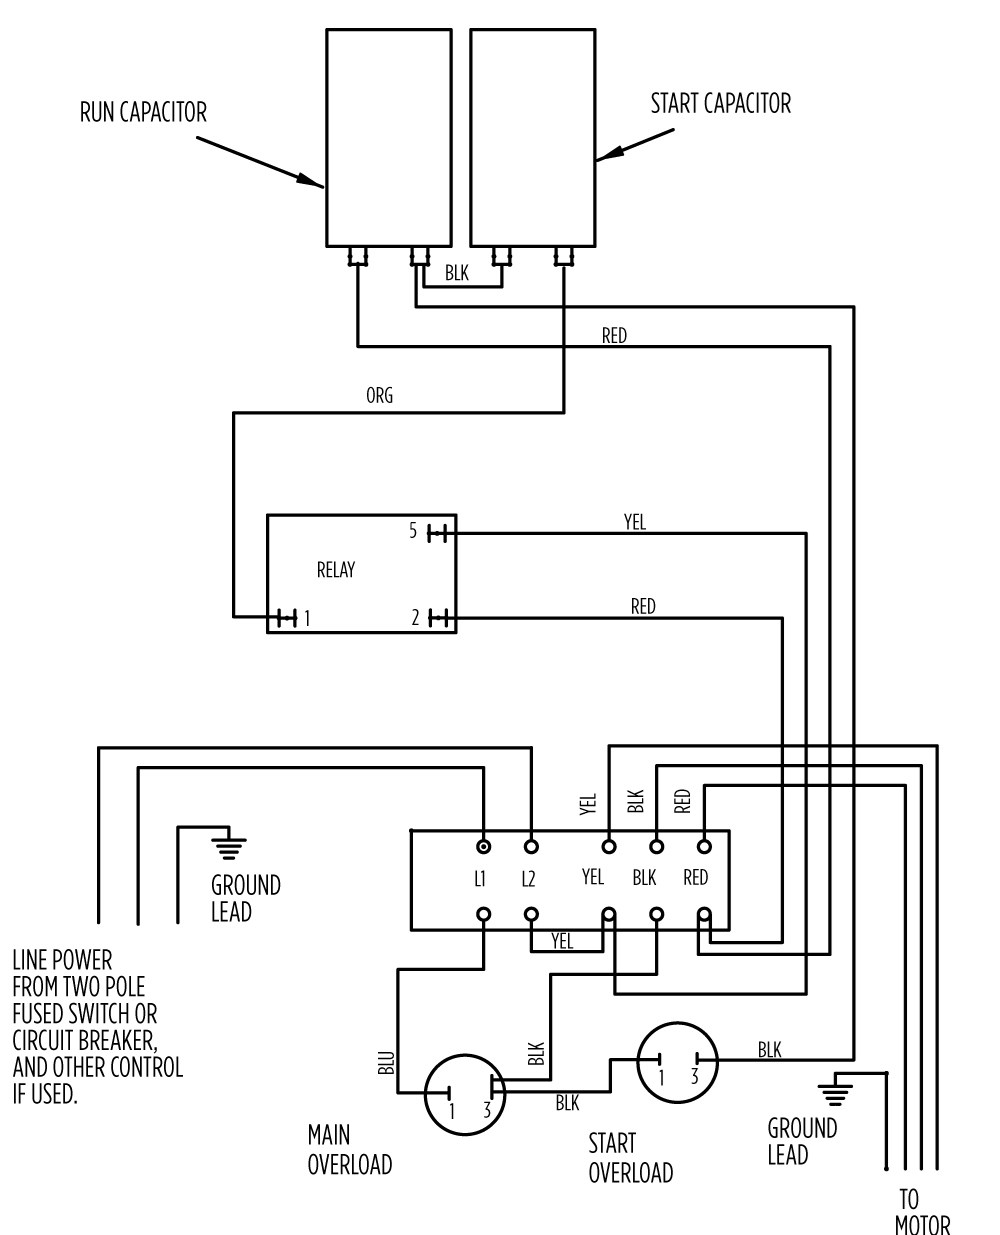 2 hp standard 282 301 8110_aim gallery?format=jpg&quality=80 aim manual page 55 single phase motors and controls motor franklin electric motor wiring diagram at readyjetset.co